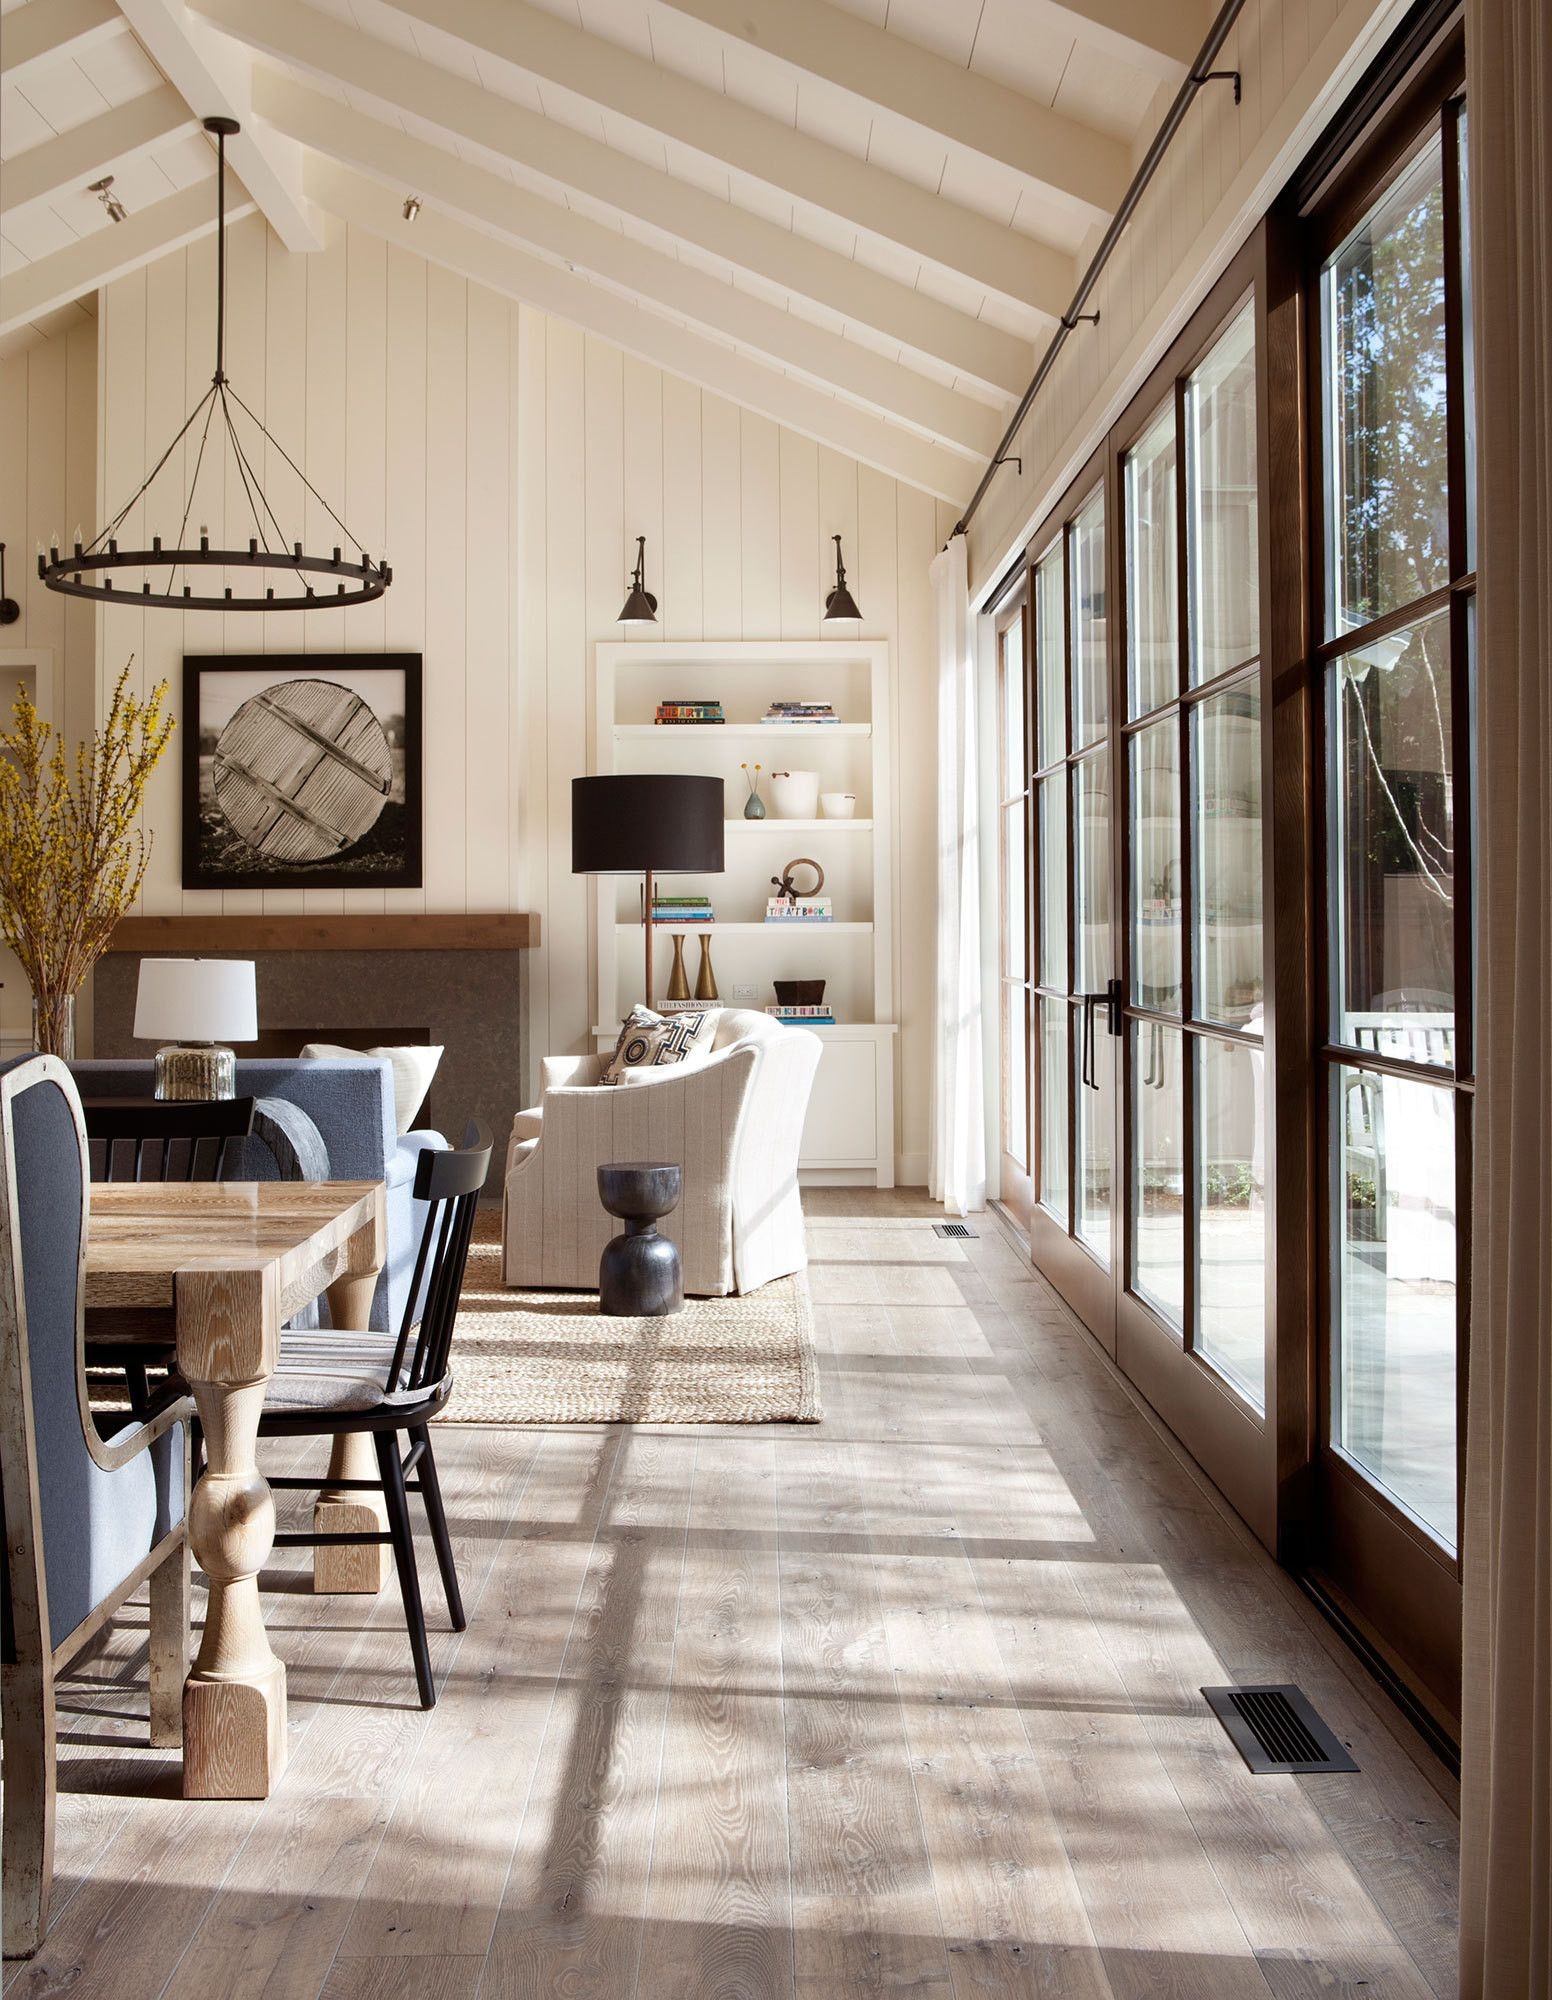 indoor outdoor living spaces covered backyard customstained oak hardwood flooring and whitewashed exposed beams overhead lend rustic ambiance throughout the main living space rusticchic family home made for indooroutdoor living in 2018